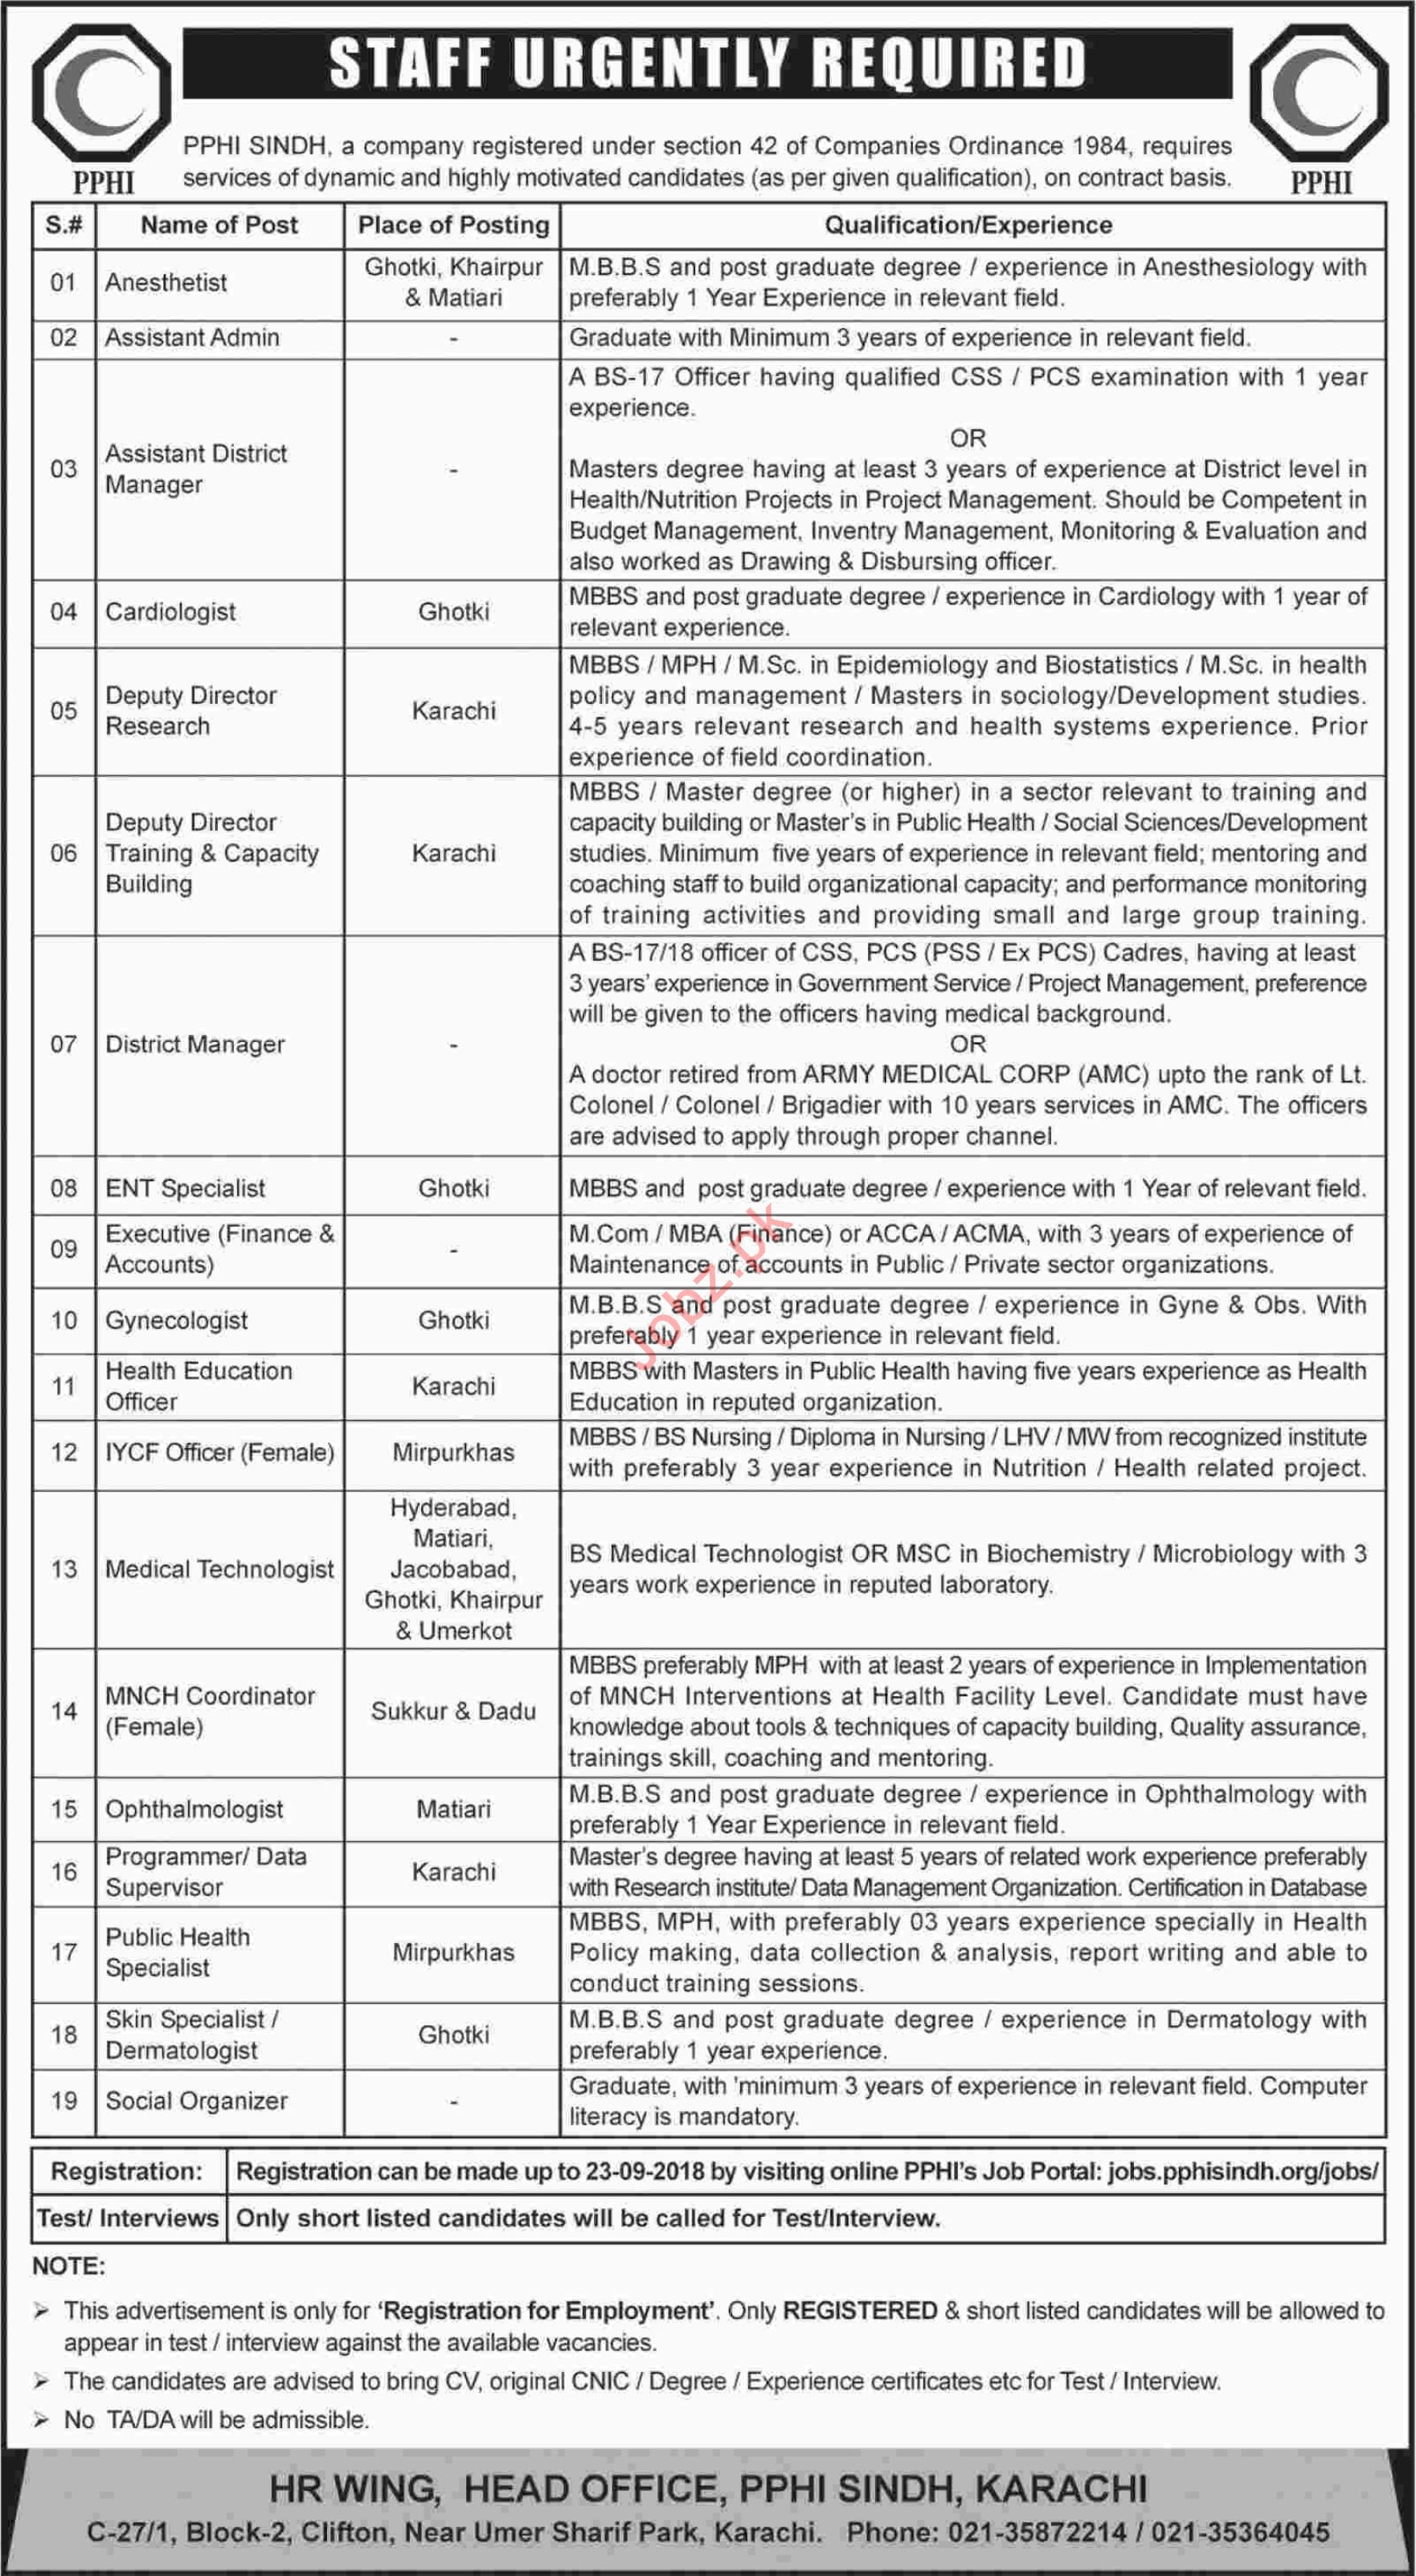 PPHI Sindh Jobs 2018 for Doctors & Technologists